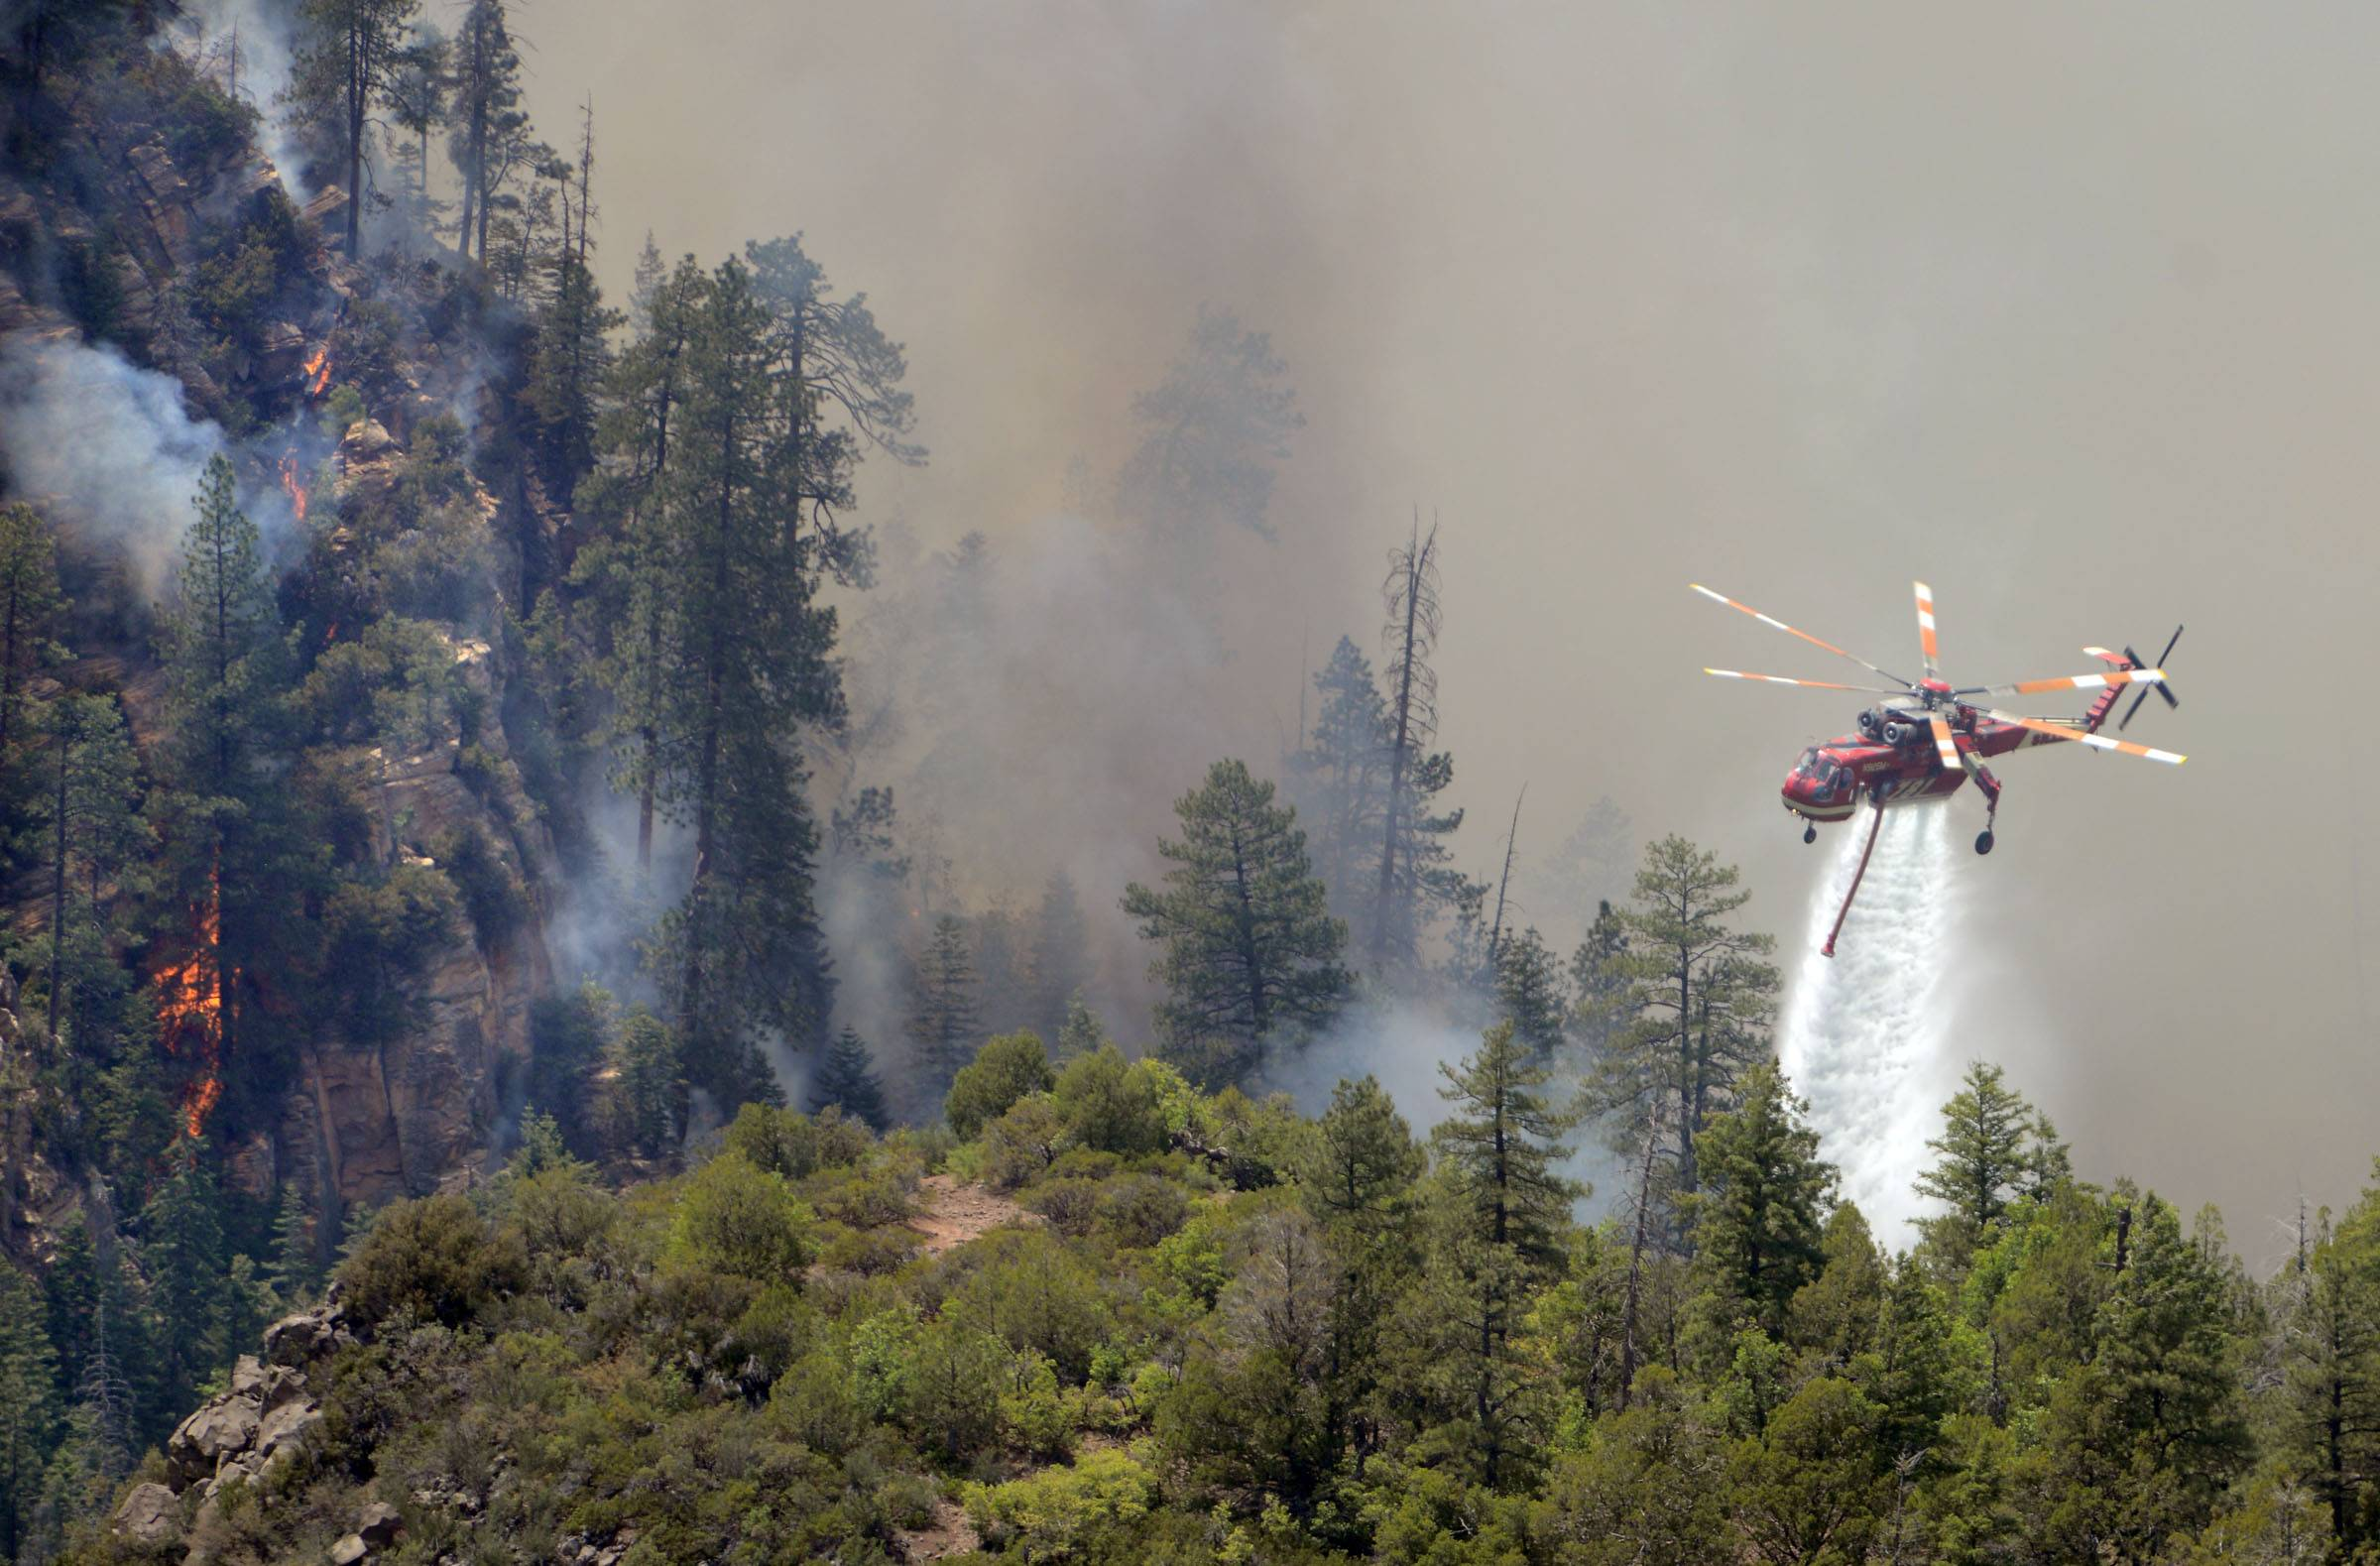 A firefighting helicopter drops water on a forest fire in Oak Creak Canyon in Sedona, Ariz., on Thursday May 22, 2014. The human-caused Slide Fire started Tuesday and has burned more than 11 1/2 square miles in and around Oak Creek Canyon, a scenic recreation area along a highway between Sedona and Flagstaff that normally would be teeming with tourists as the Memorial Day weekend approaches.